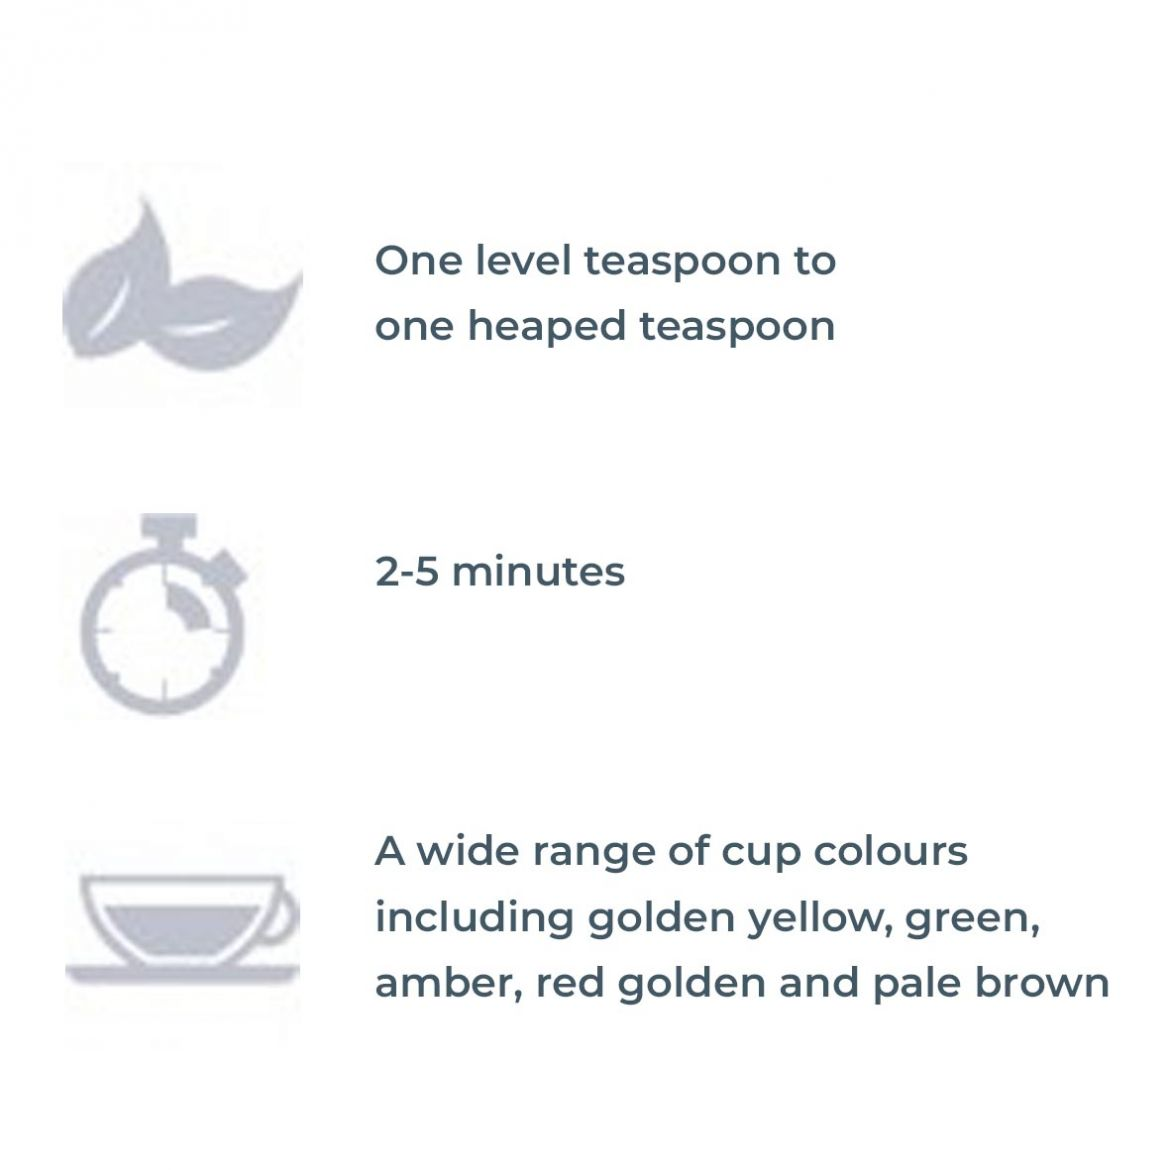 How to brew Oolong teas